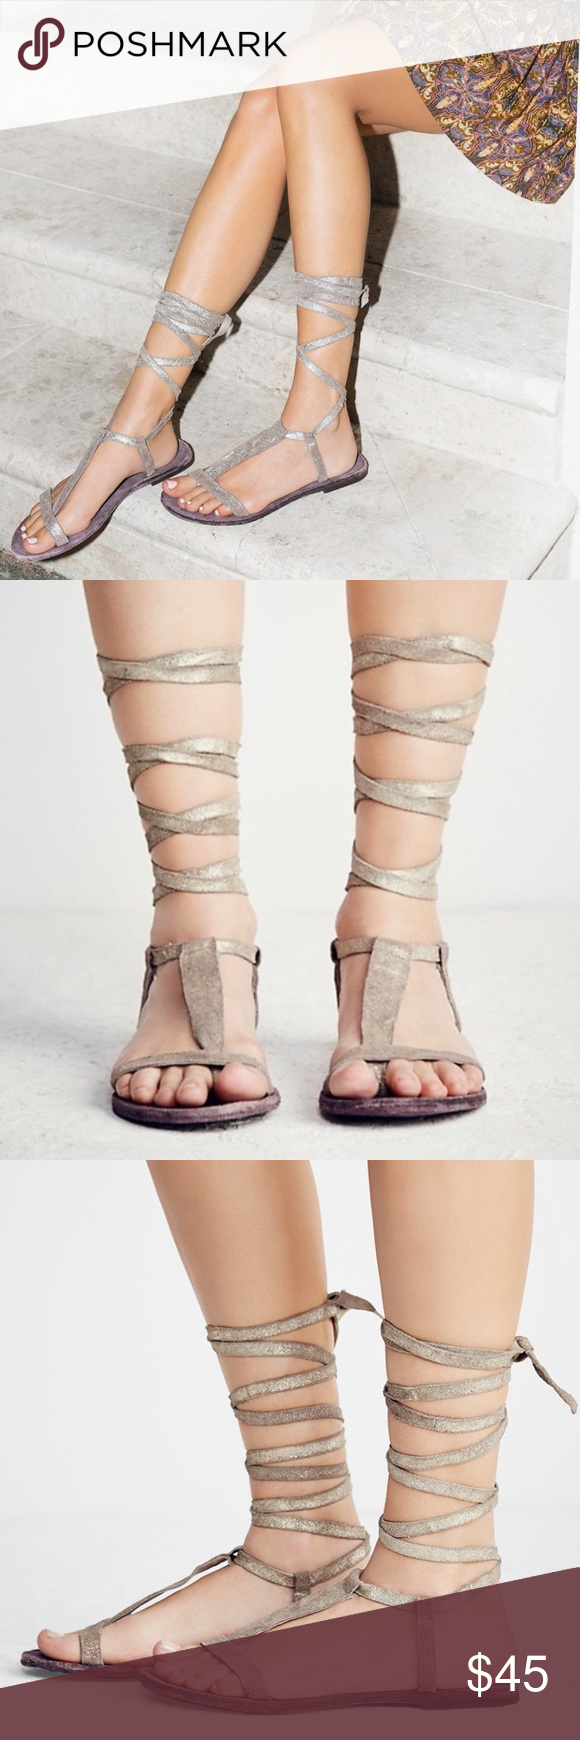 e6e13ee5b7c7 NEW Free People Dahlia Lace-Up Sandal Sunkissed This pair of Free People  Dahlia sandals is absolutely stunning! Open toe sandals with wrap-around  laces that ...